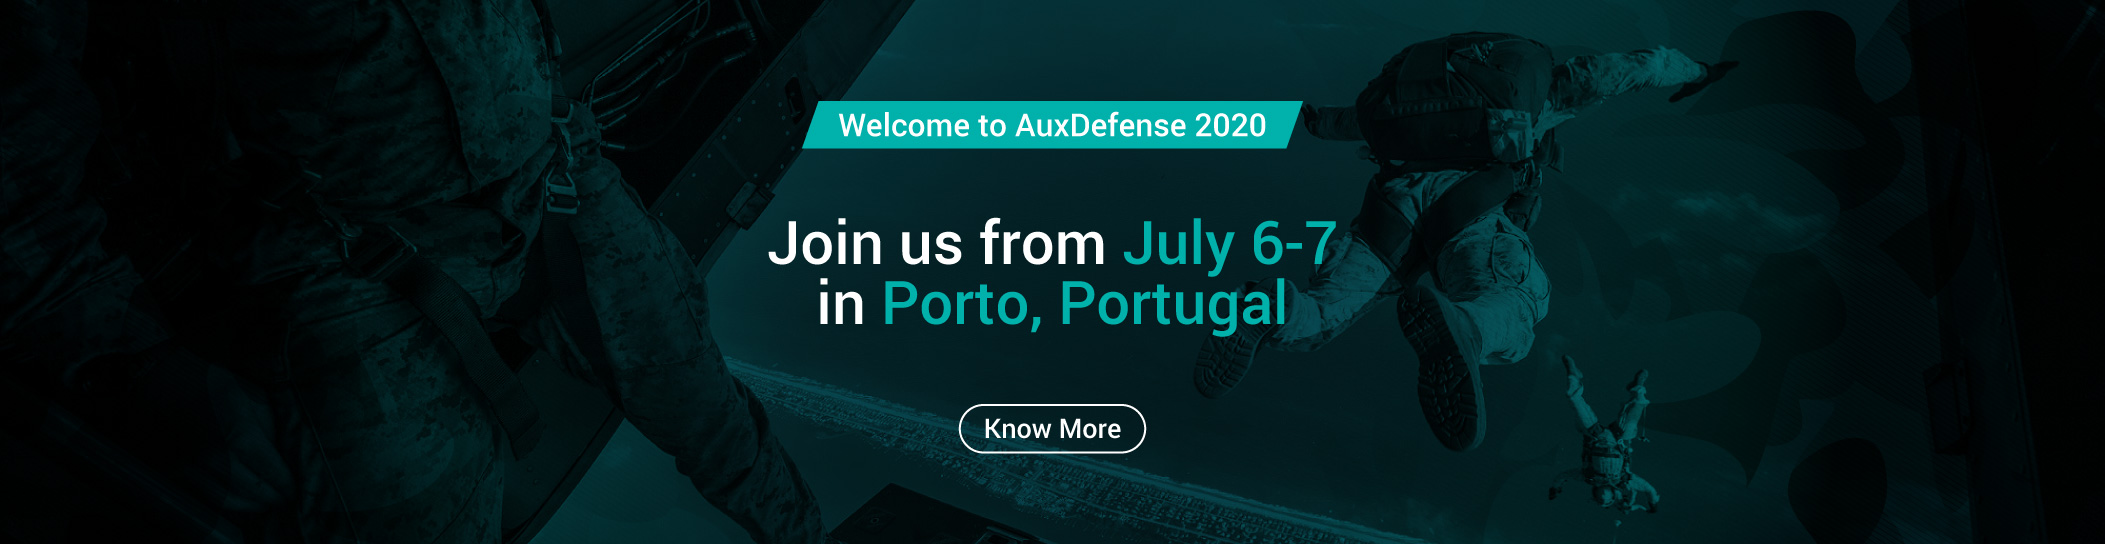 Img - Welcome to AuxDefense 2020